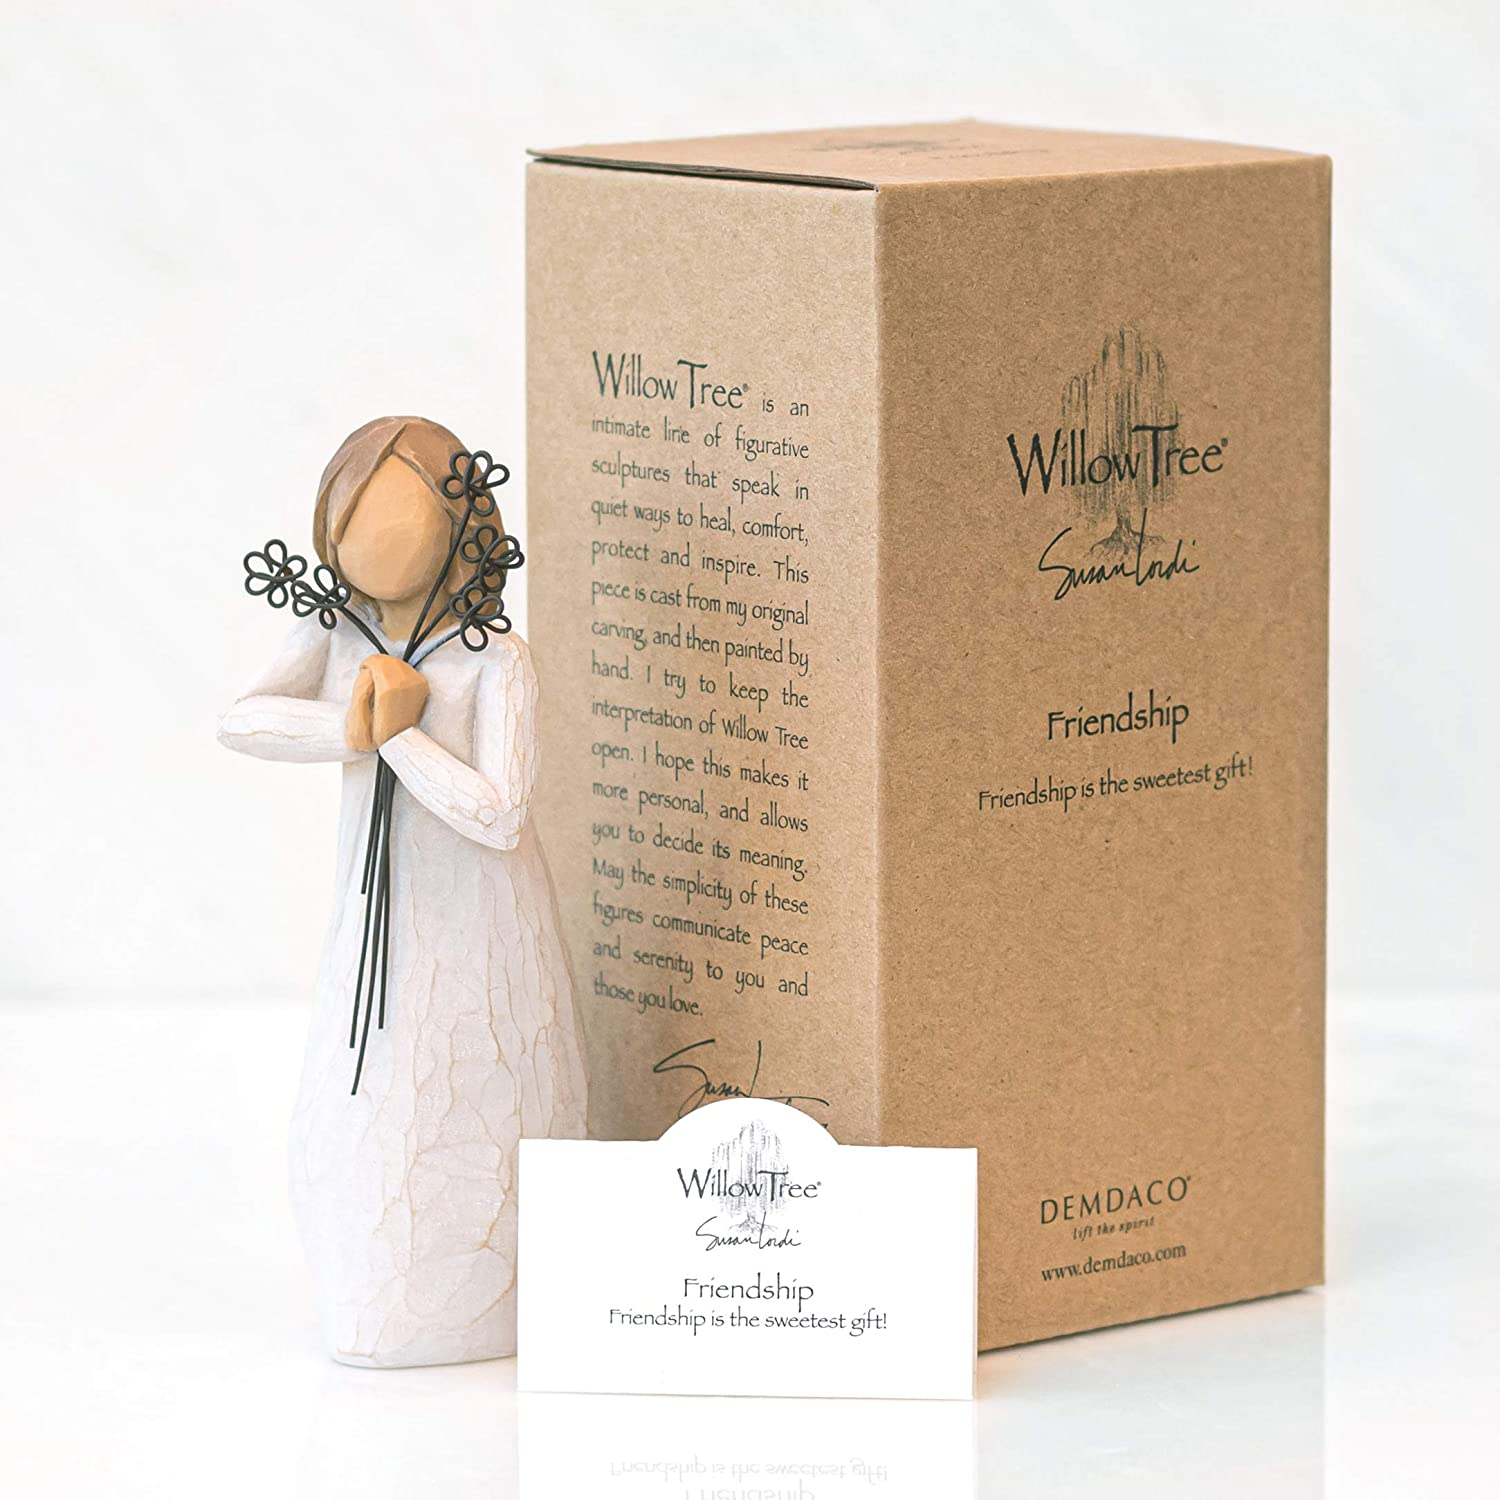 Willow Tree Friendship Figurine 26155 in Branded Gift Box